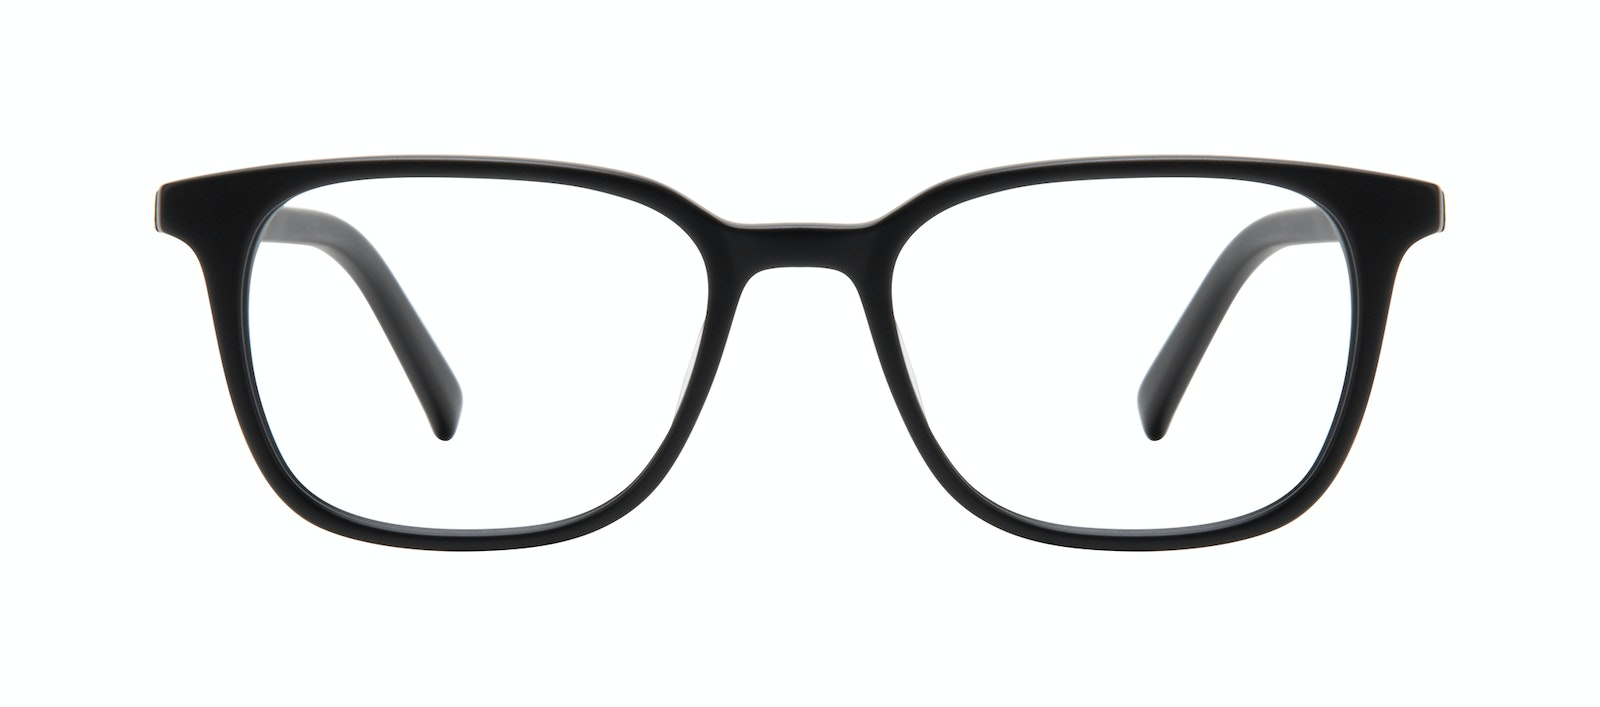 Affordable Fashion Glasses Square Eyeglasses Men Choice Black Matte Front